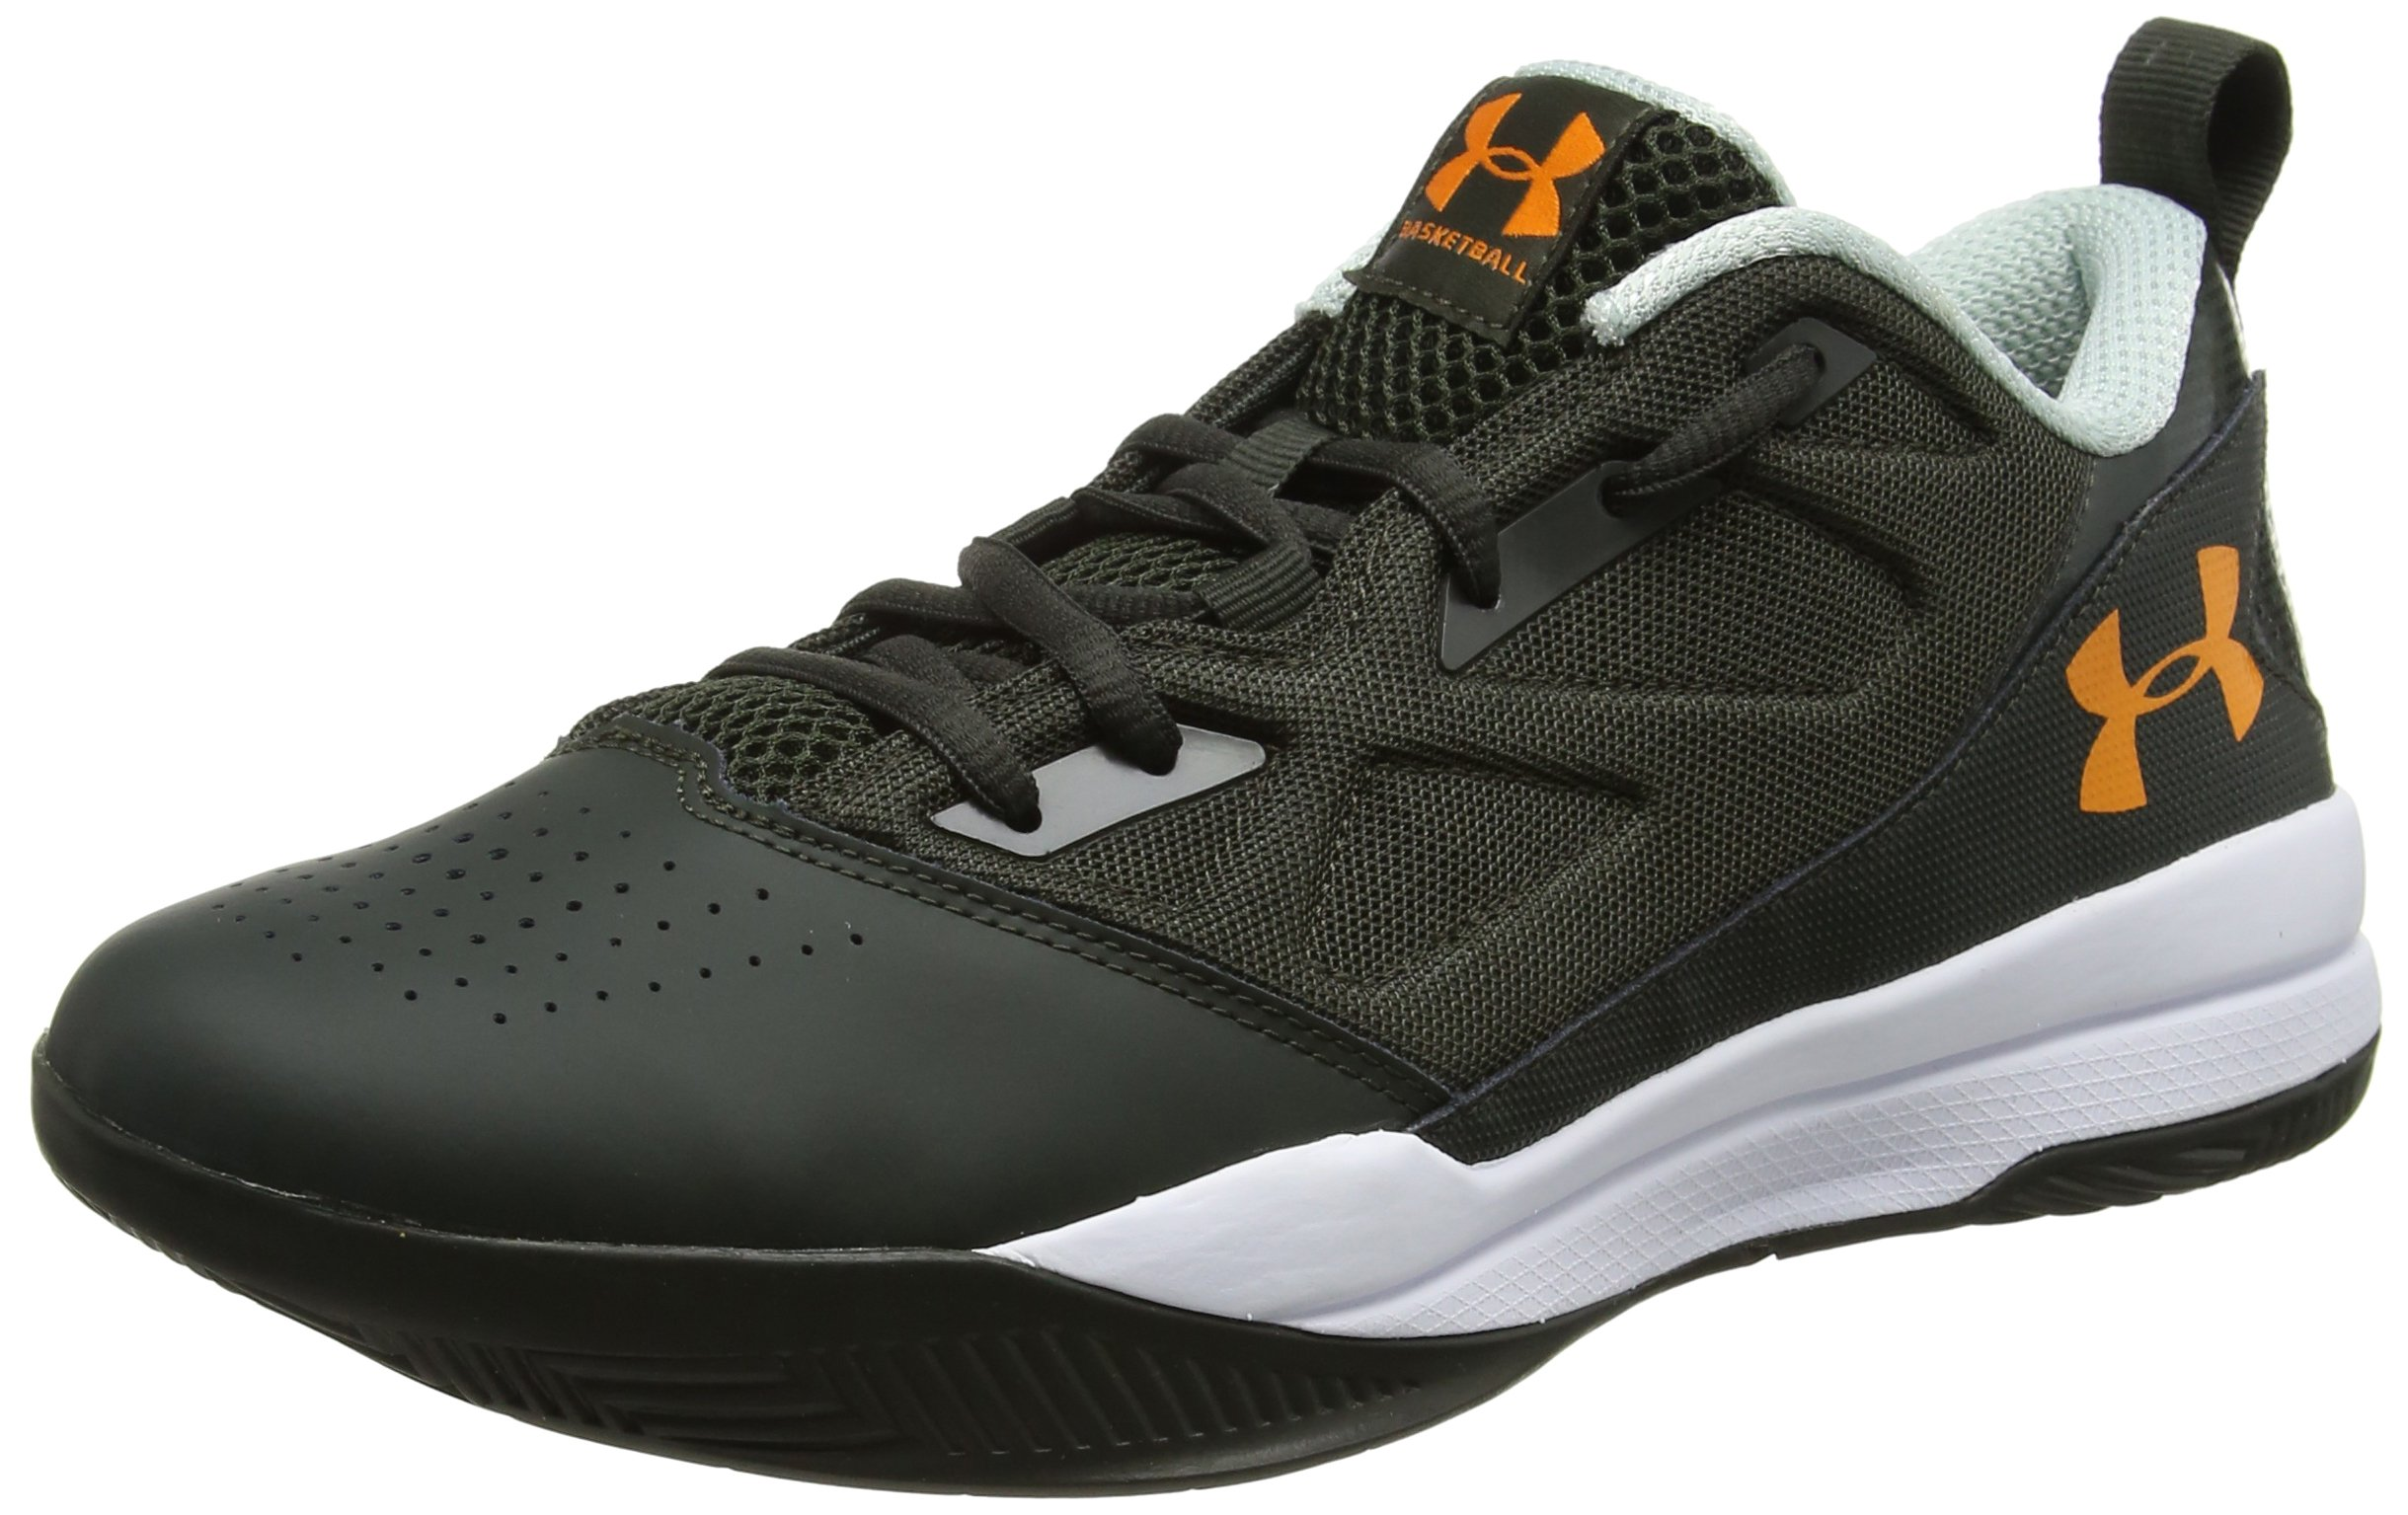 Encarnar desastre mago  Under Armour Men's UA Jet Low Artillery Green/White/Radiate Athletic Shoe  on Galleon Philippines